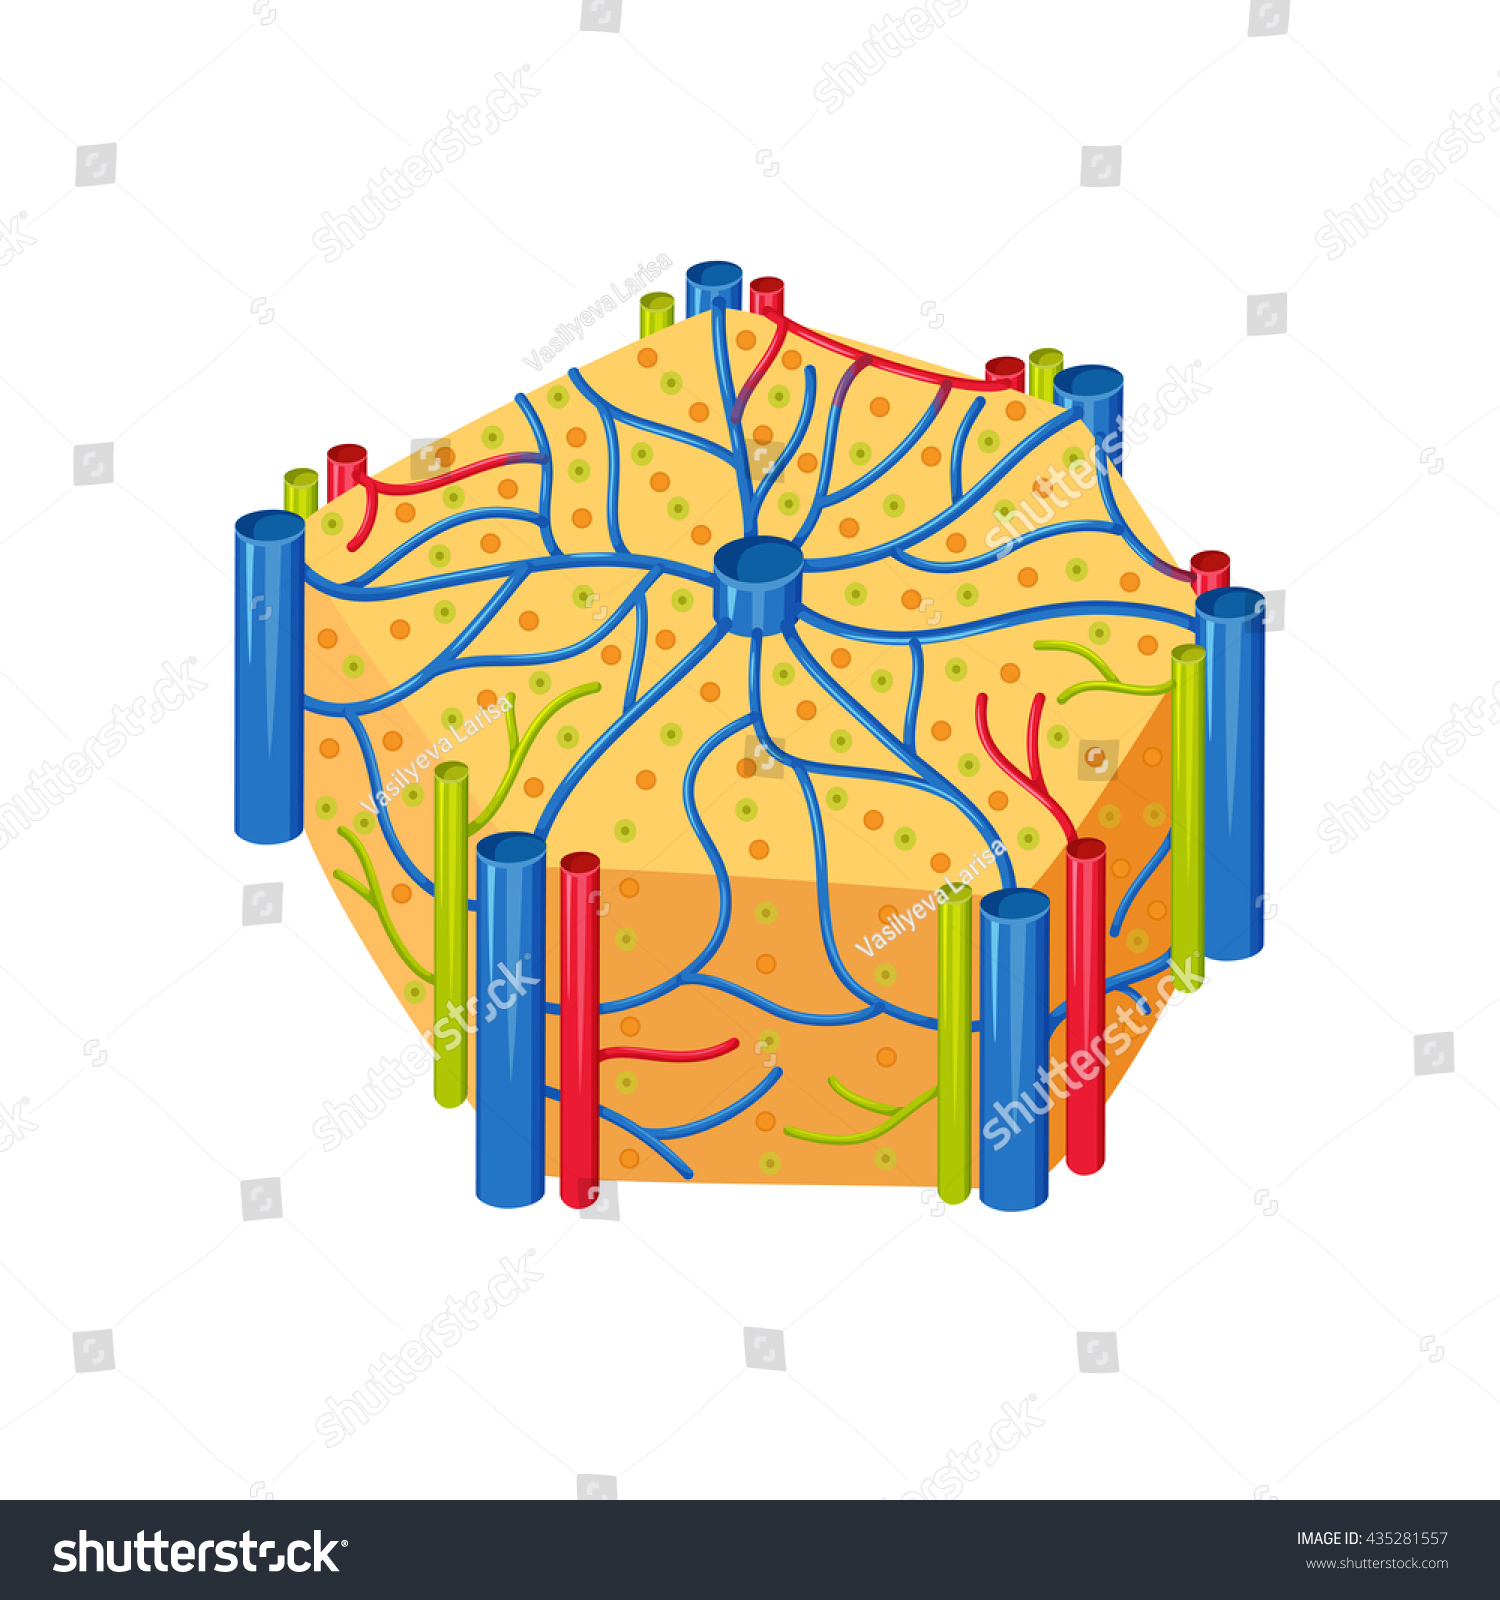 Human Liver Lobes Anatomy Medical Science Stock Vector 2018